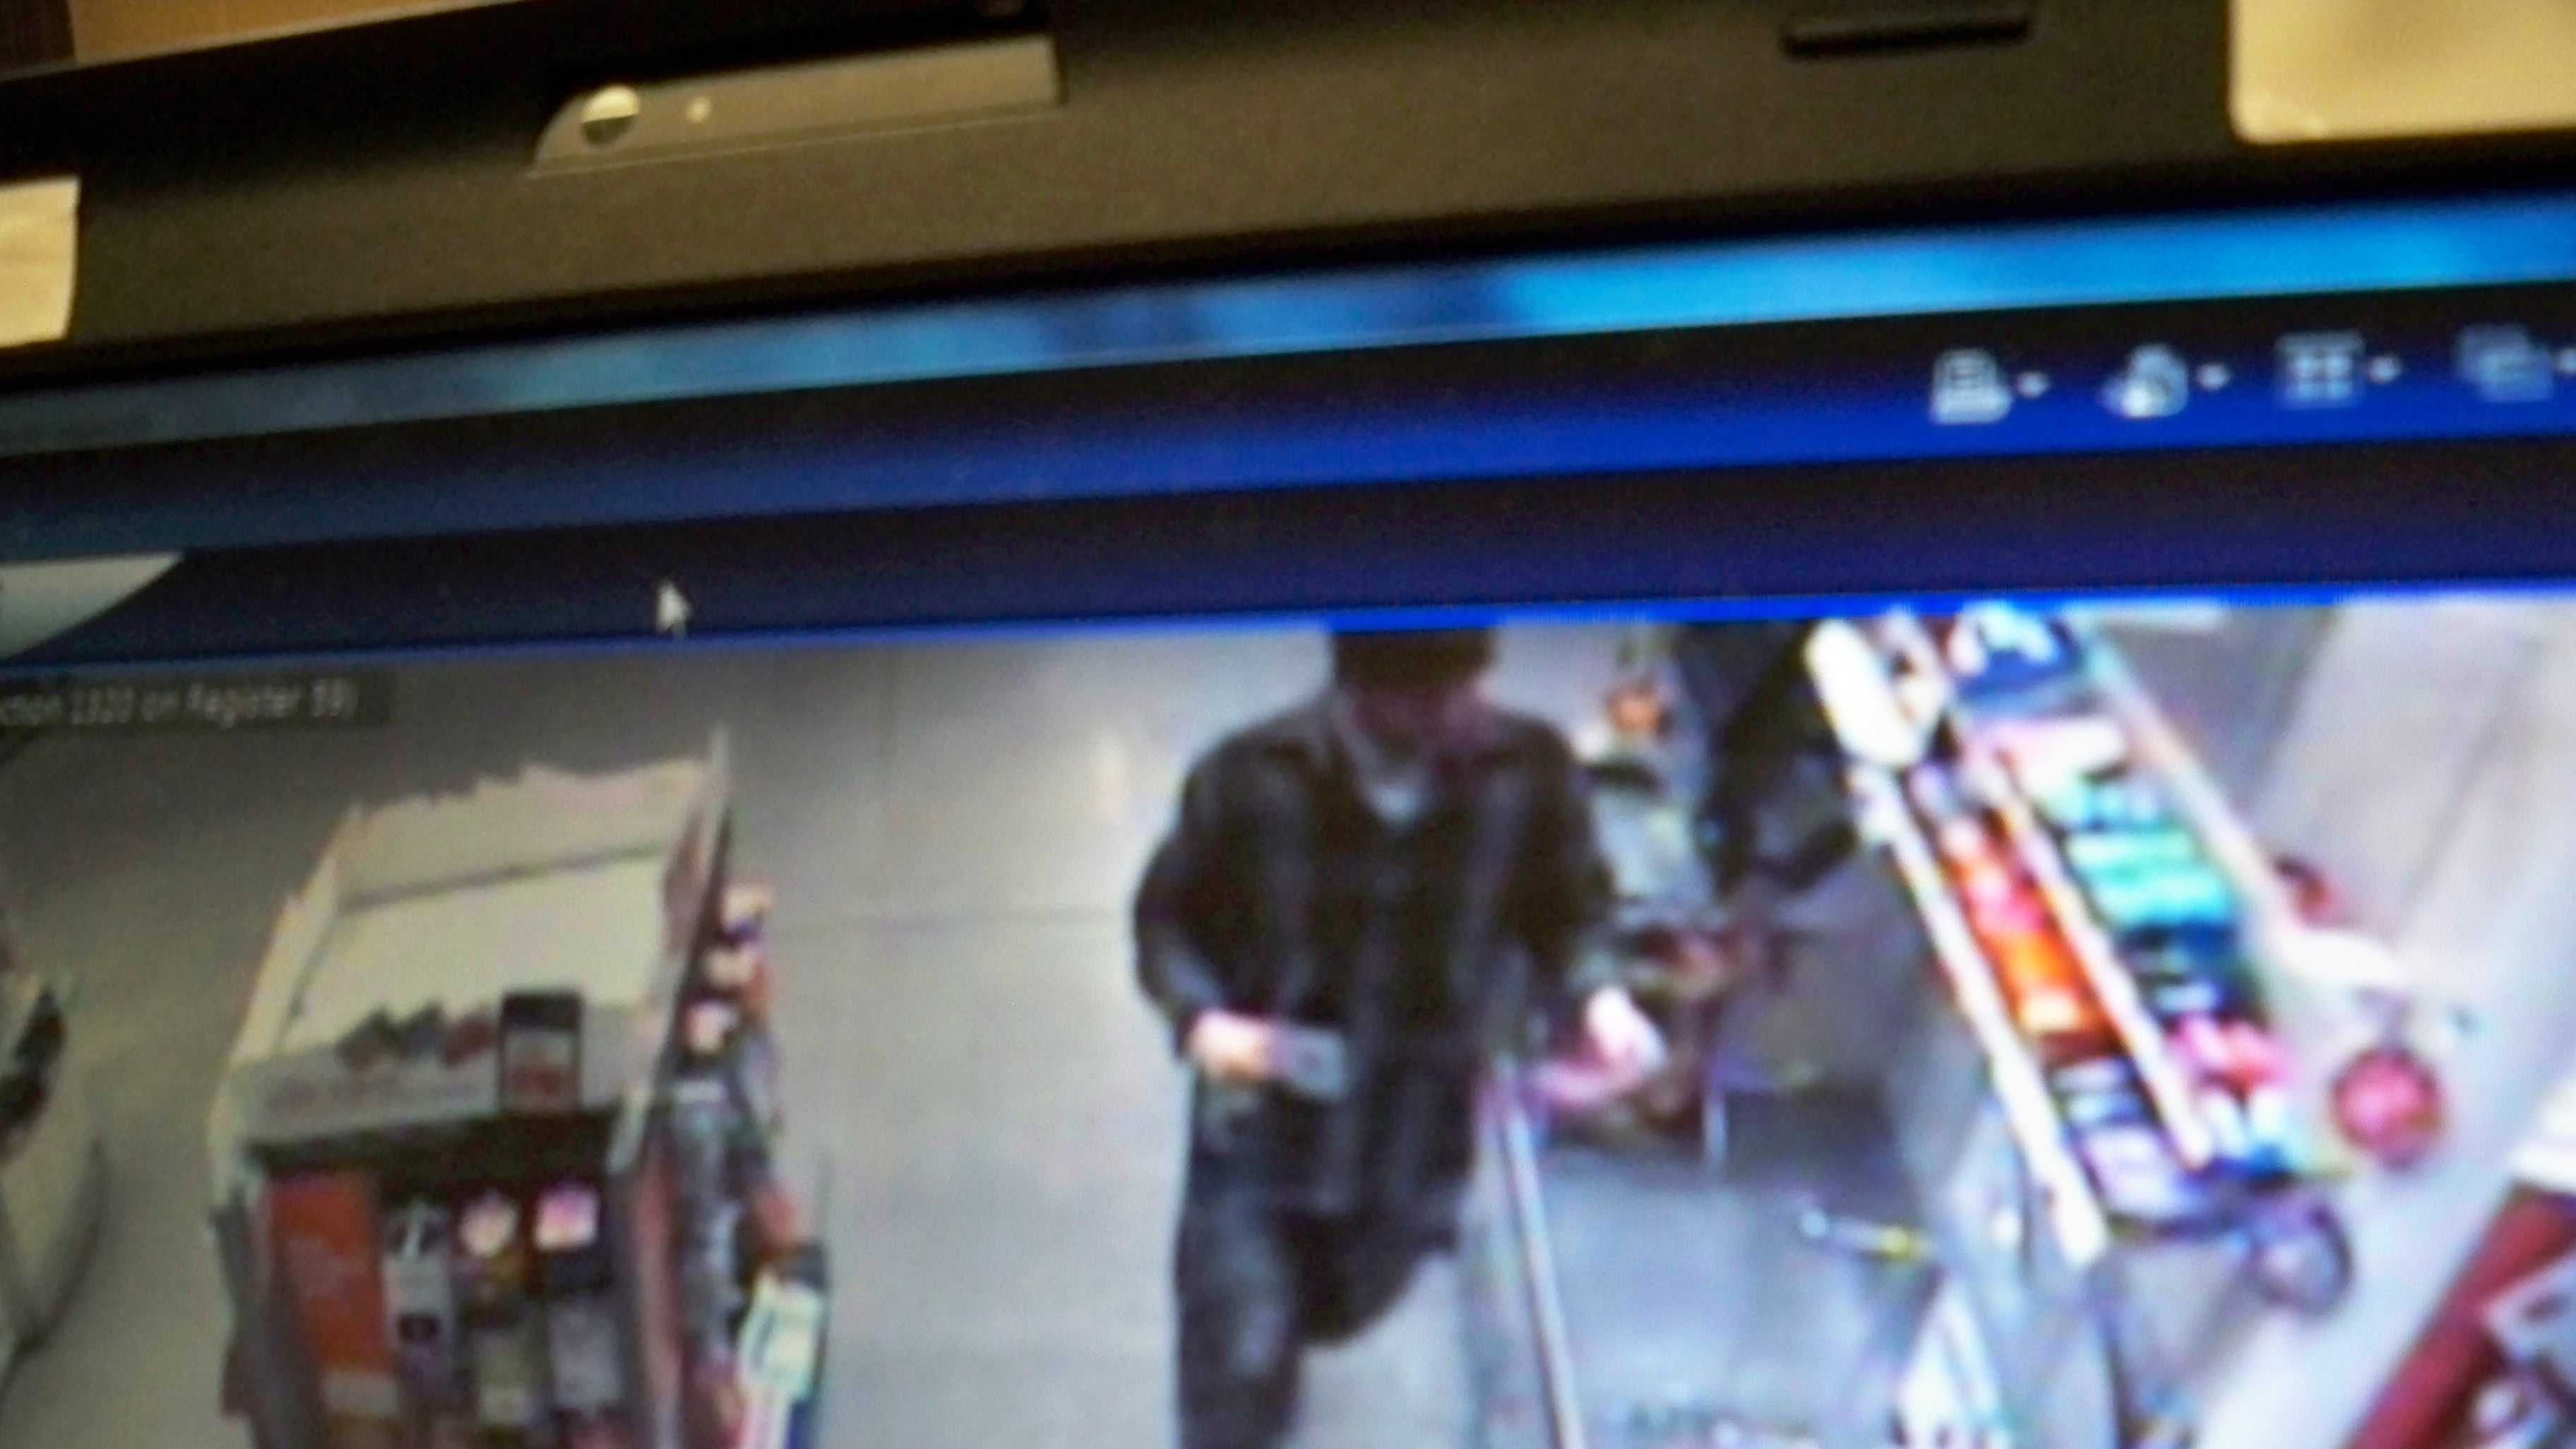 111512 Police release image of possible flasher suspect - img